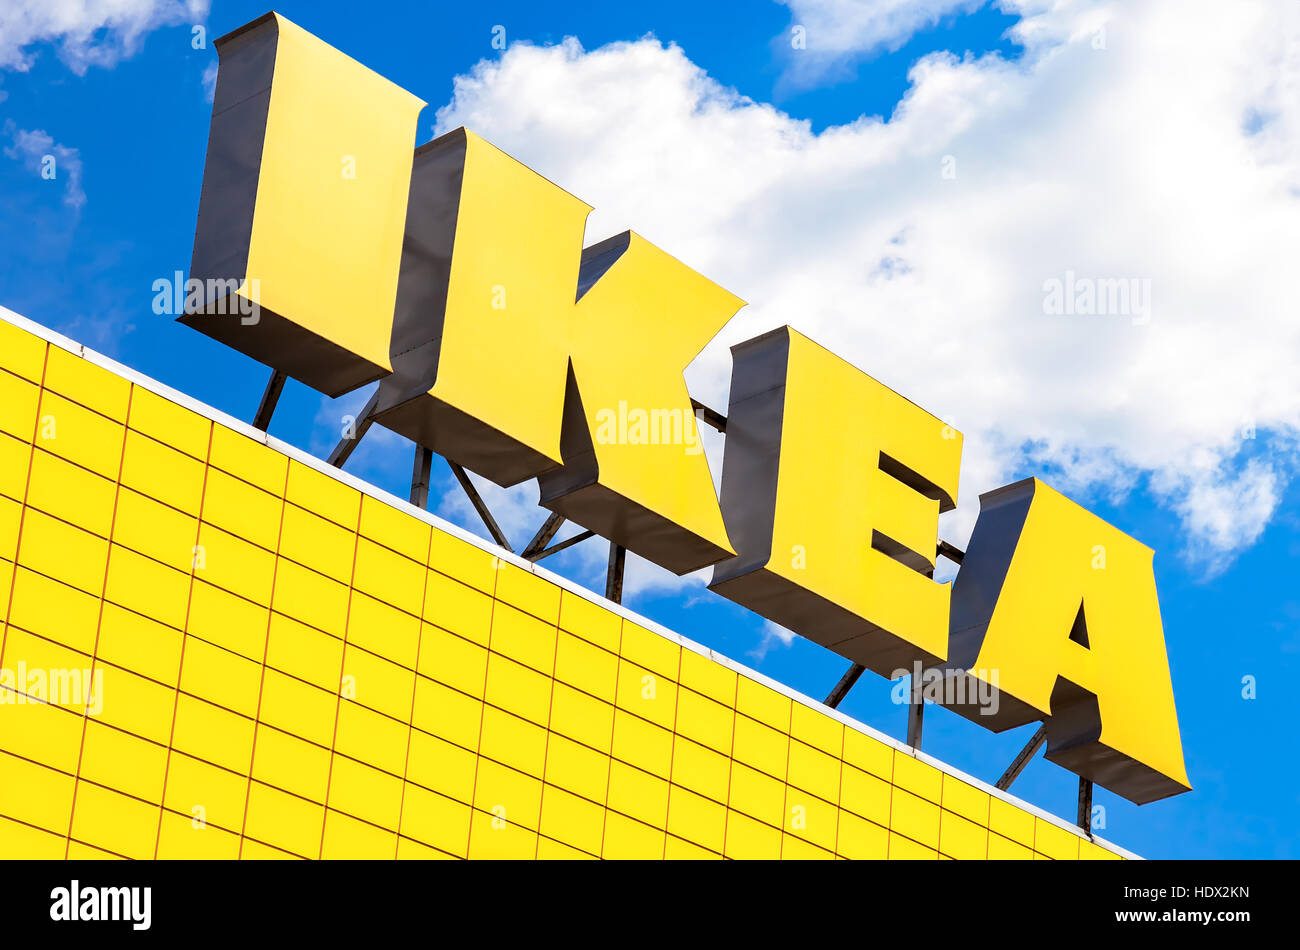 ikea the global retailer Ikea ikea is a swedish privately held, international company that sells home products such as chairs, beds, and home appliances ikea is known to be the world's largest furniture retailer, who focuses on energy conservation.